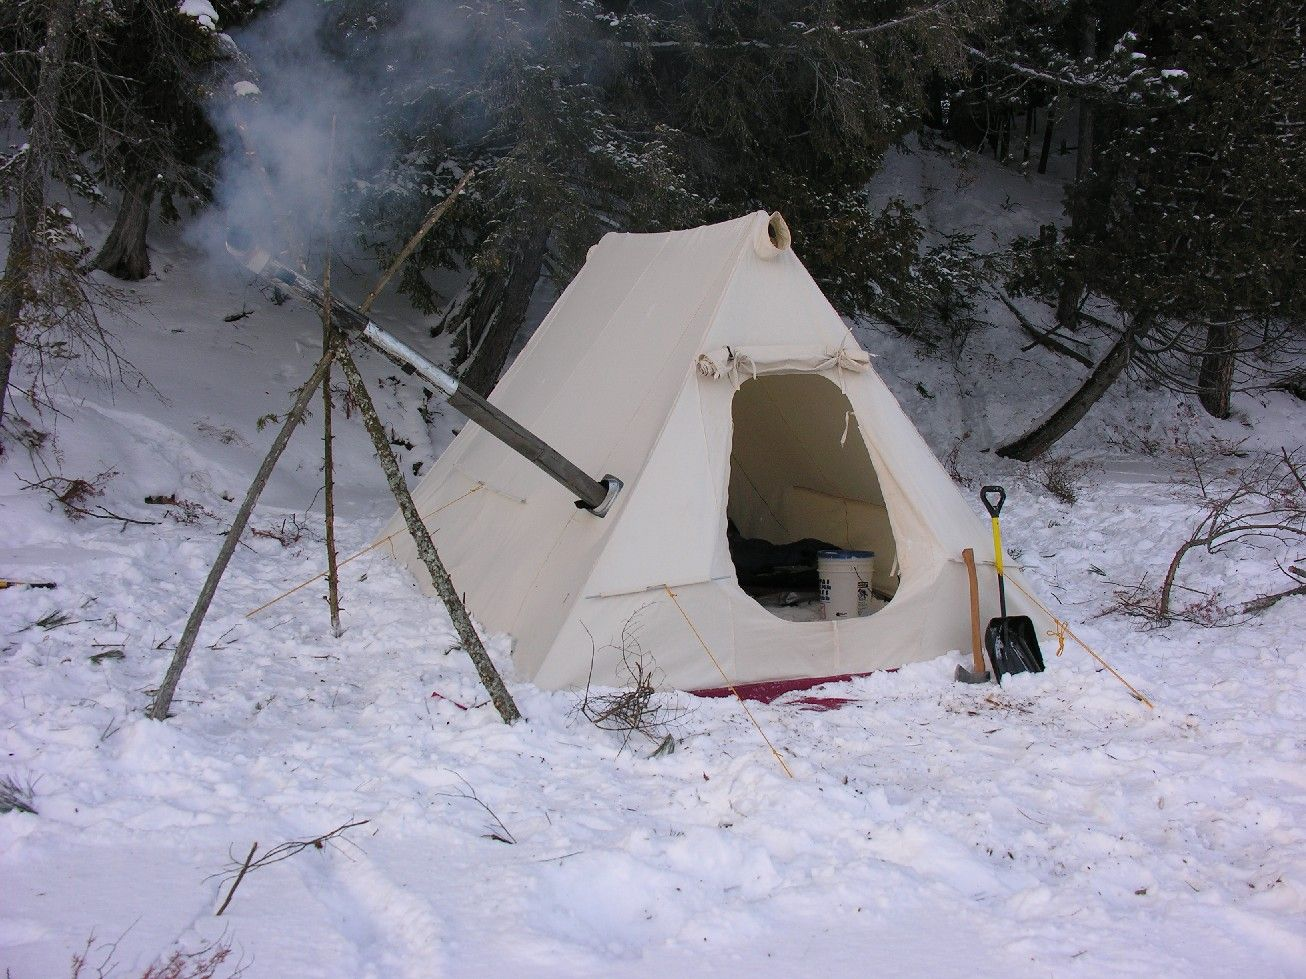 Winter C&ing Tents   View topic - Food Thoughts for Winter C&ing? & Winter Camping Tents   View topic - Food Thoughts for Winter ...